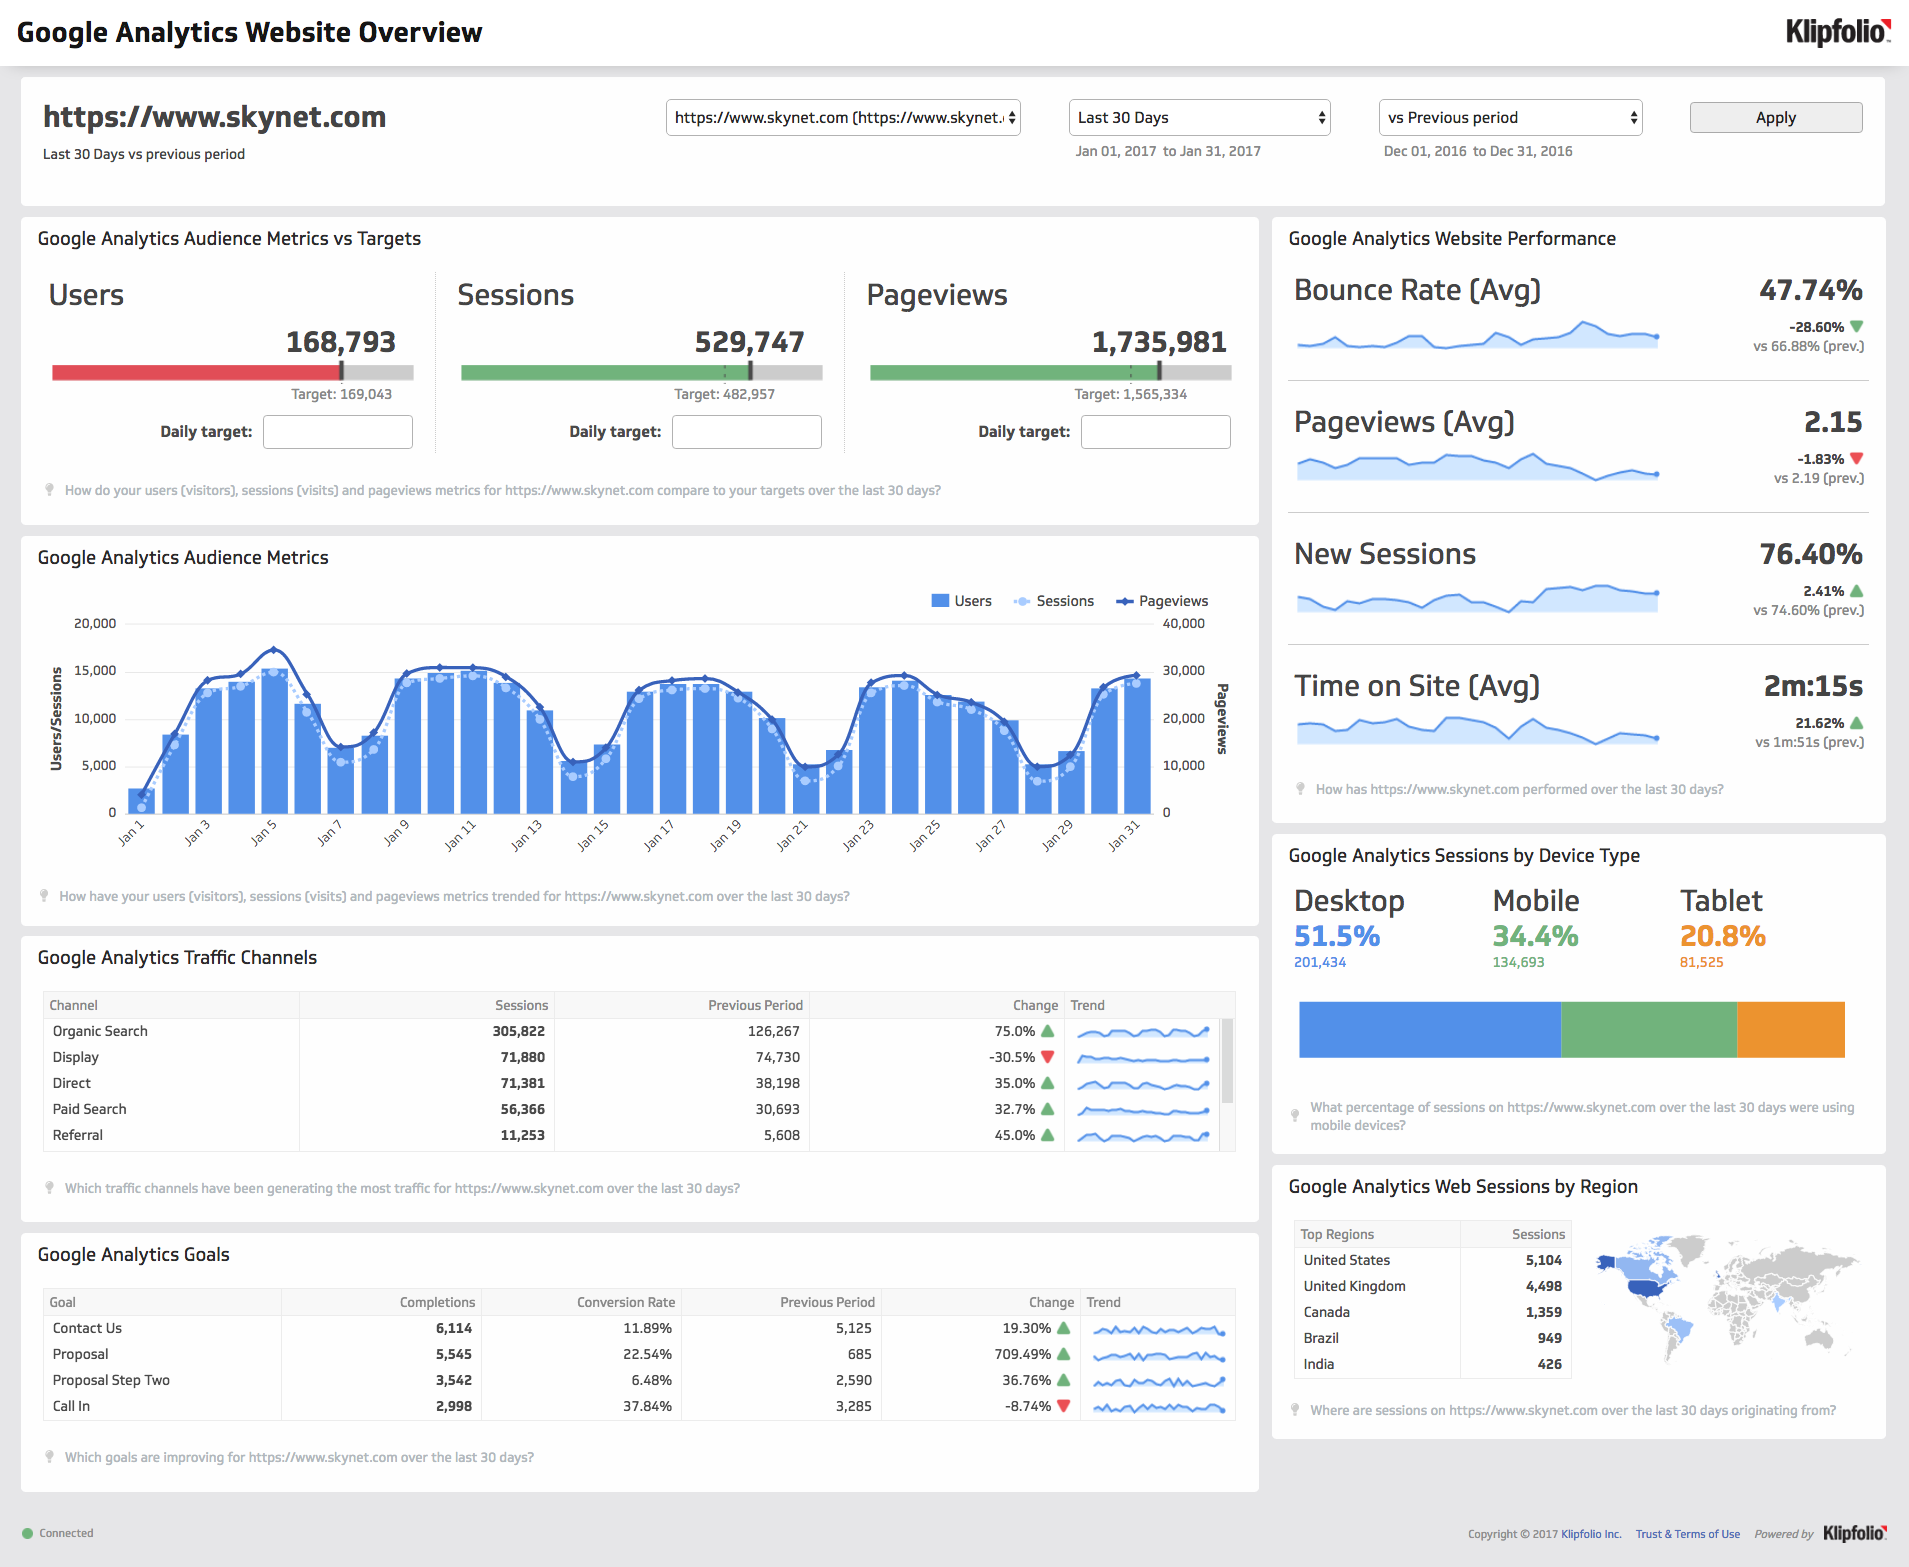 Dashboard Template | Google Analytics - Website Overview